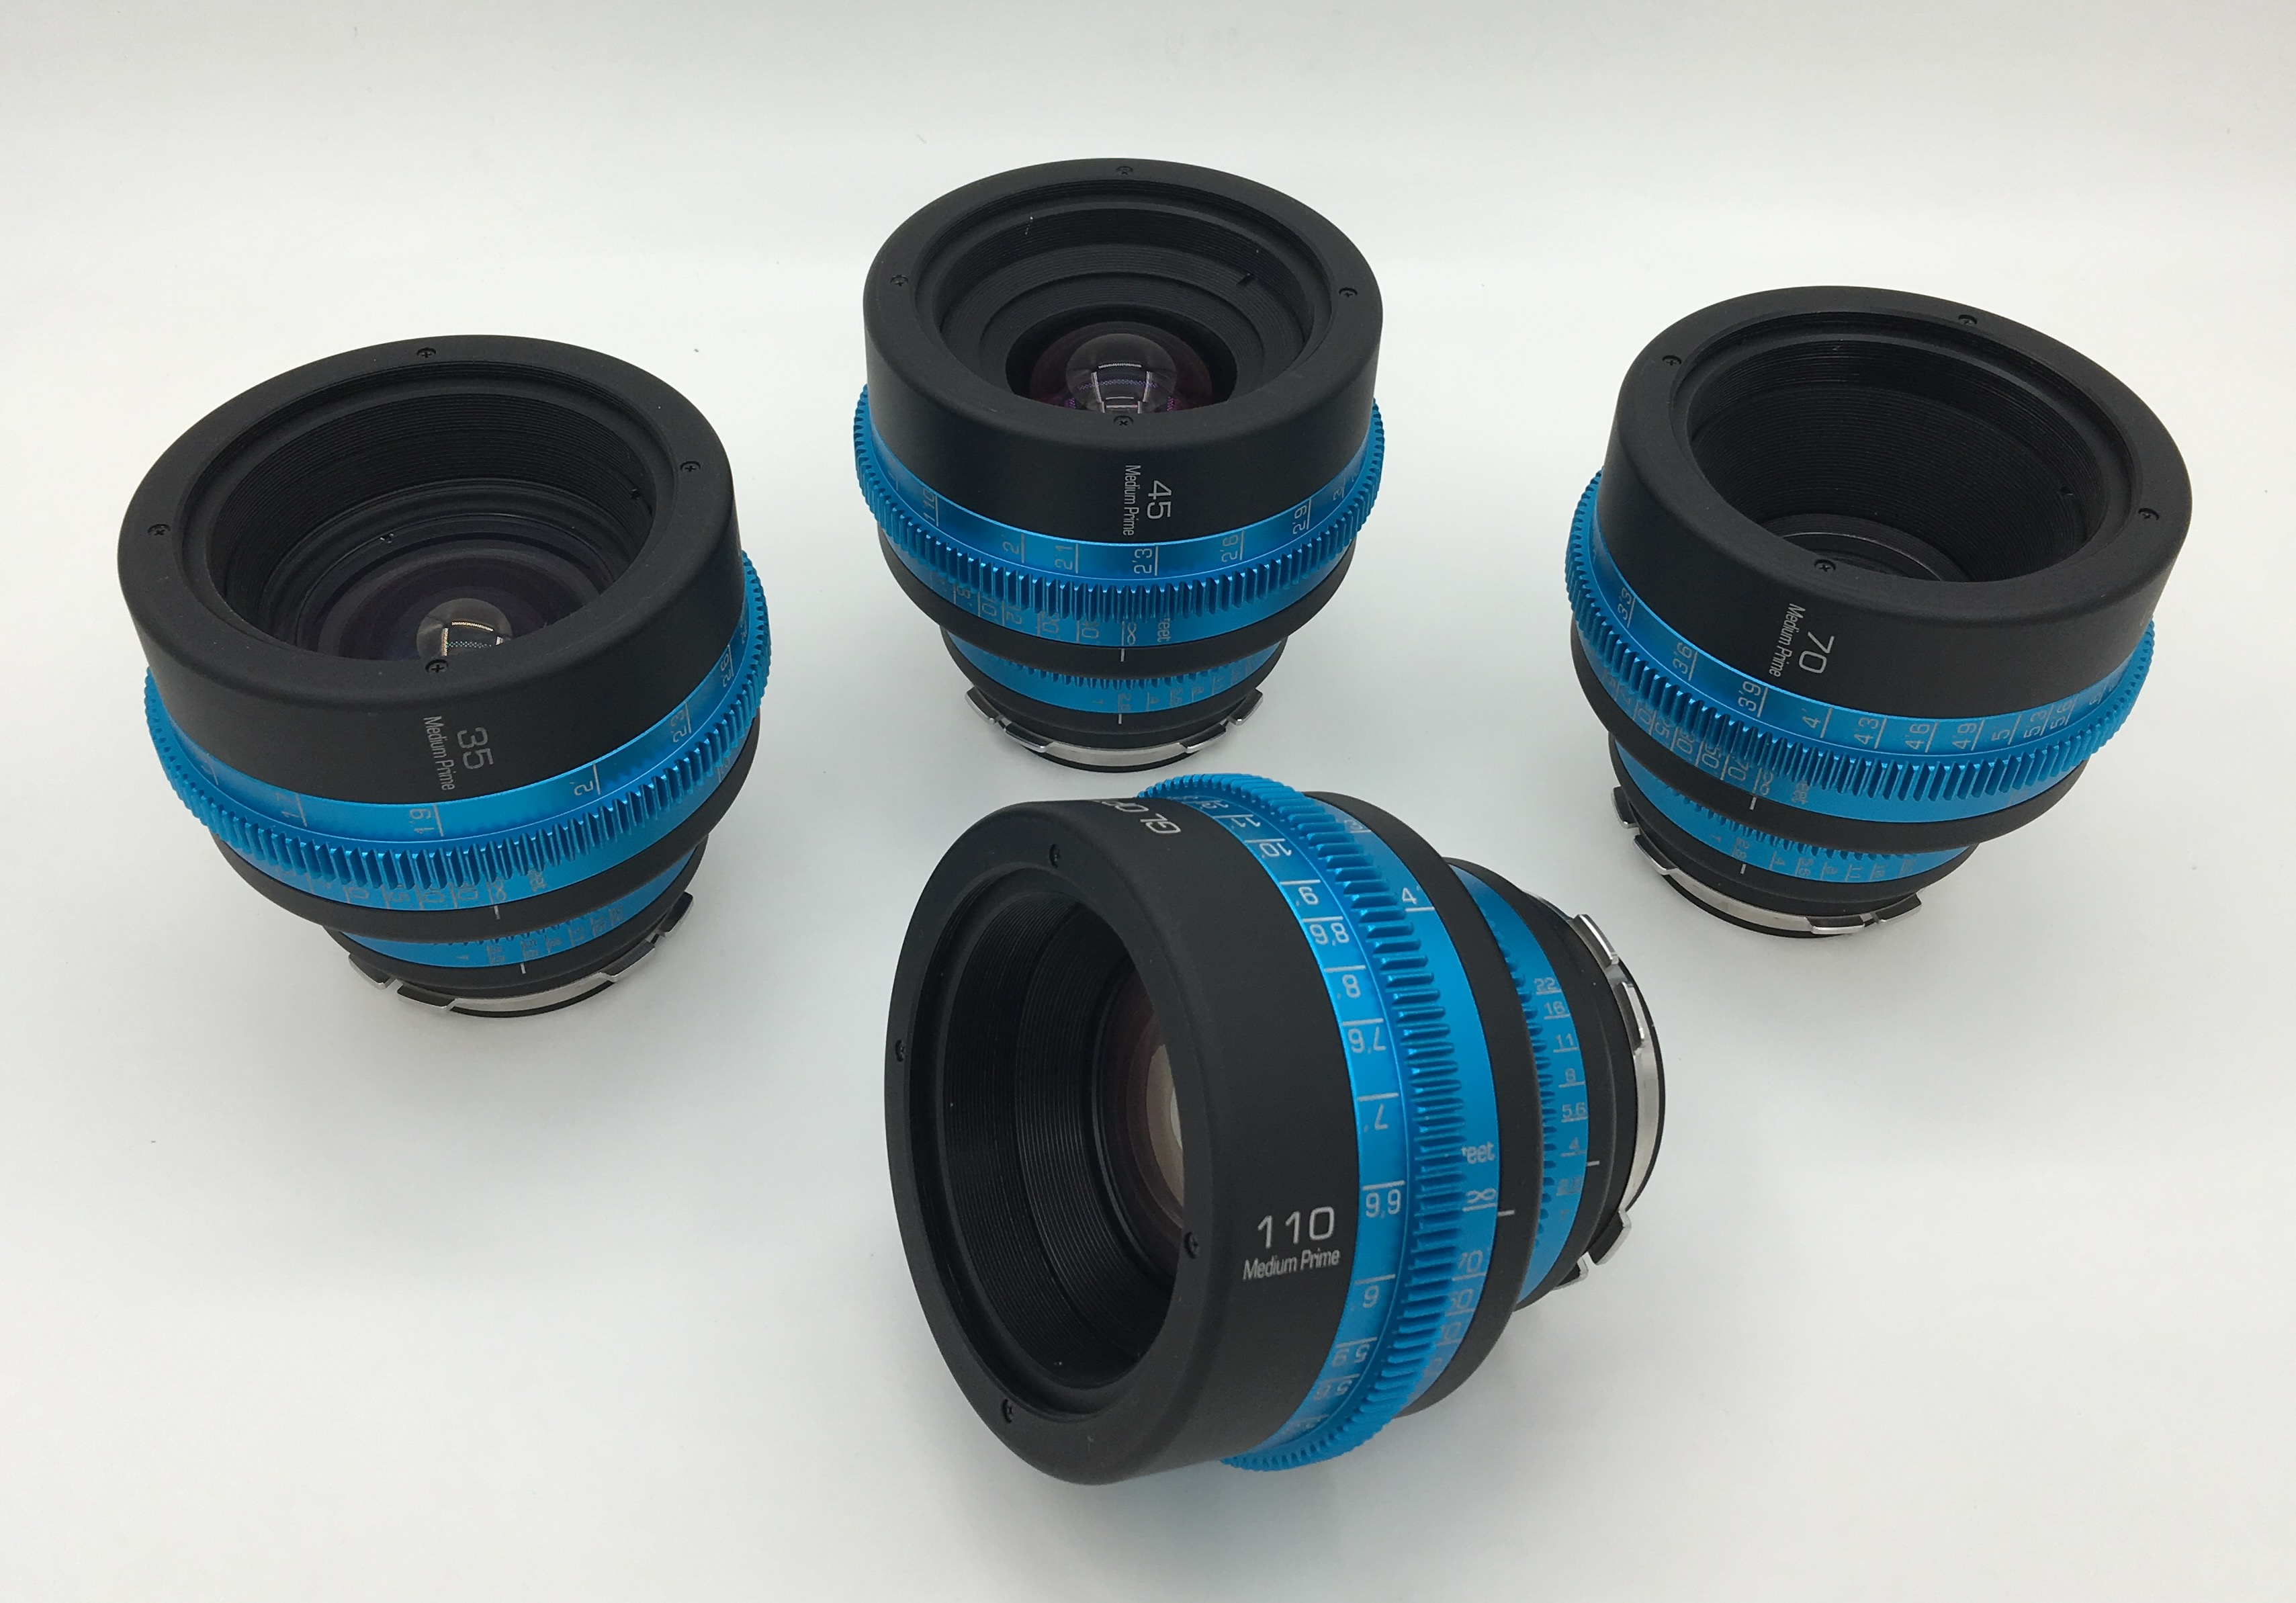 Gl Optics Announce New Range Of Medium Format Pl Cine Lens Cap 3rd 55mm Chinese Conversion Company Has Have Just Announced A Set Rehoused Prime Lenses Based On The Mamiya 645